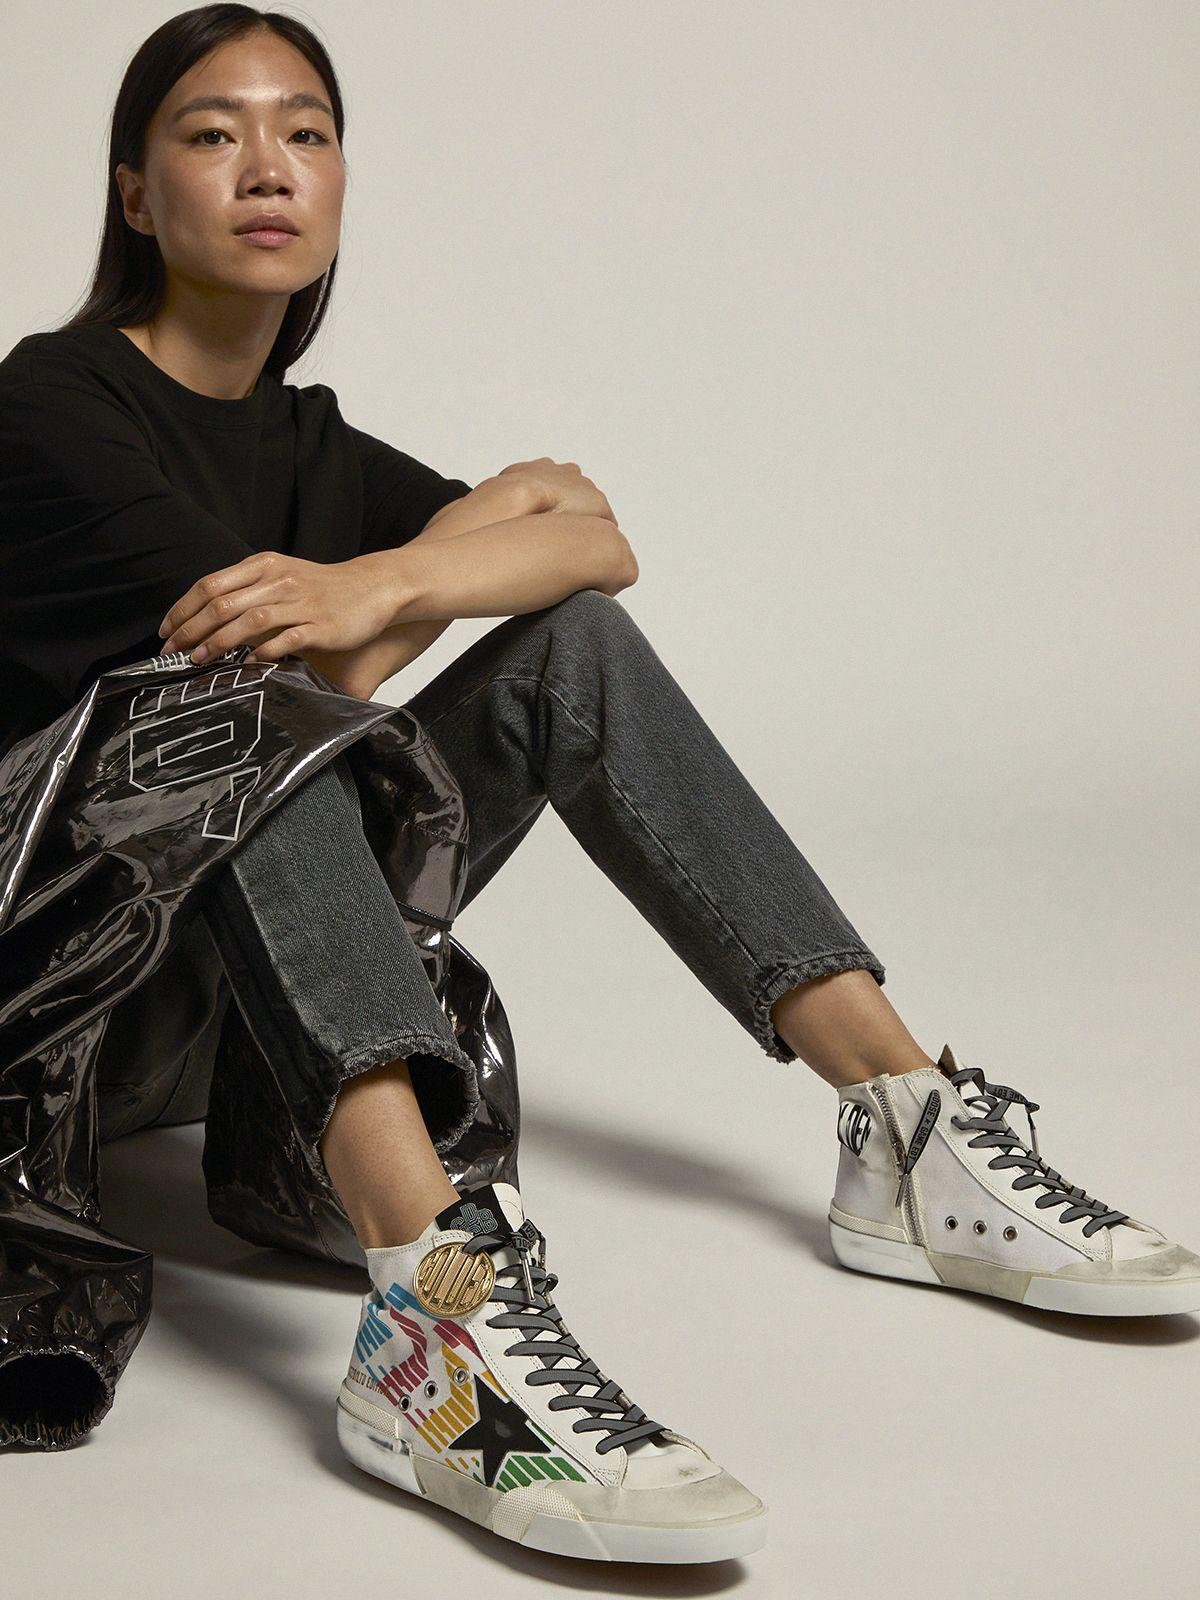 Francy Game EDT Capsule Collection sneakers with white canvas upper and multicolored screen print 4